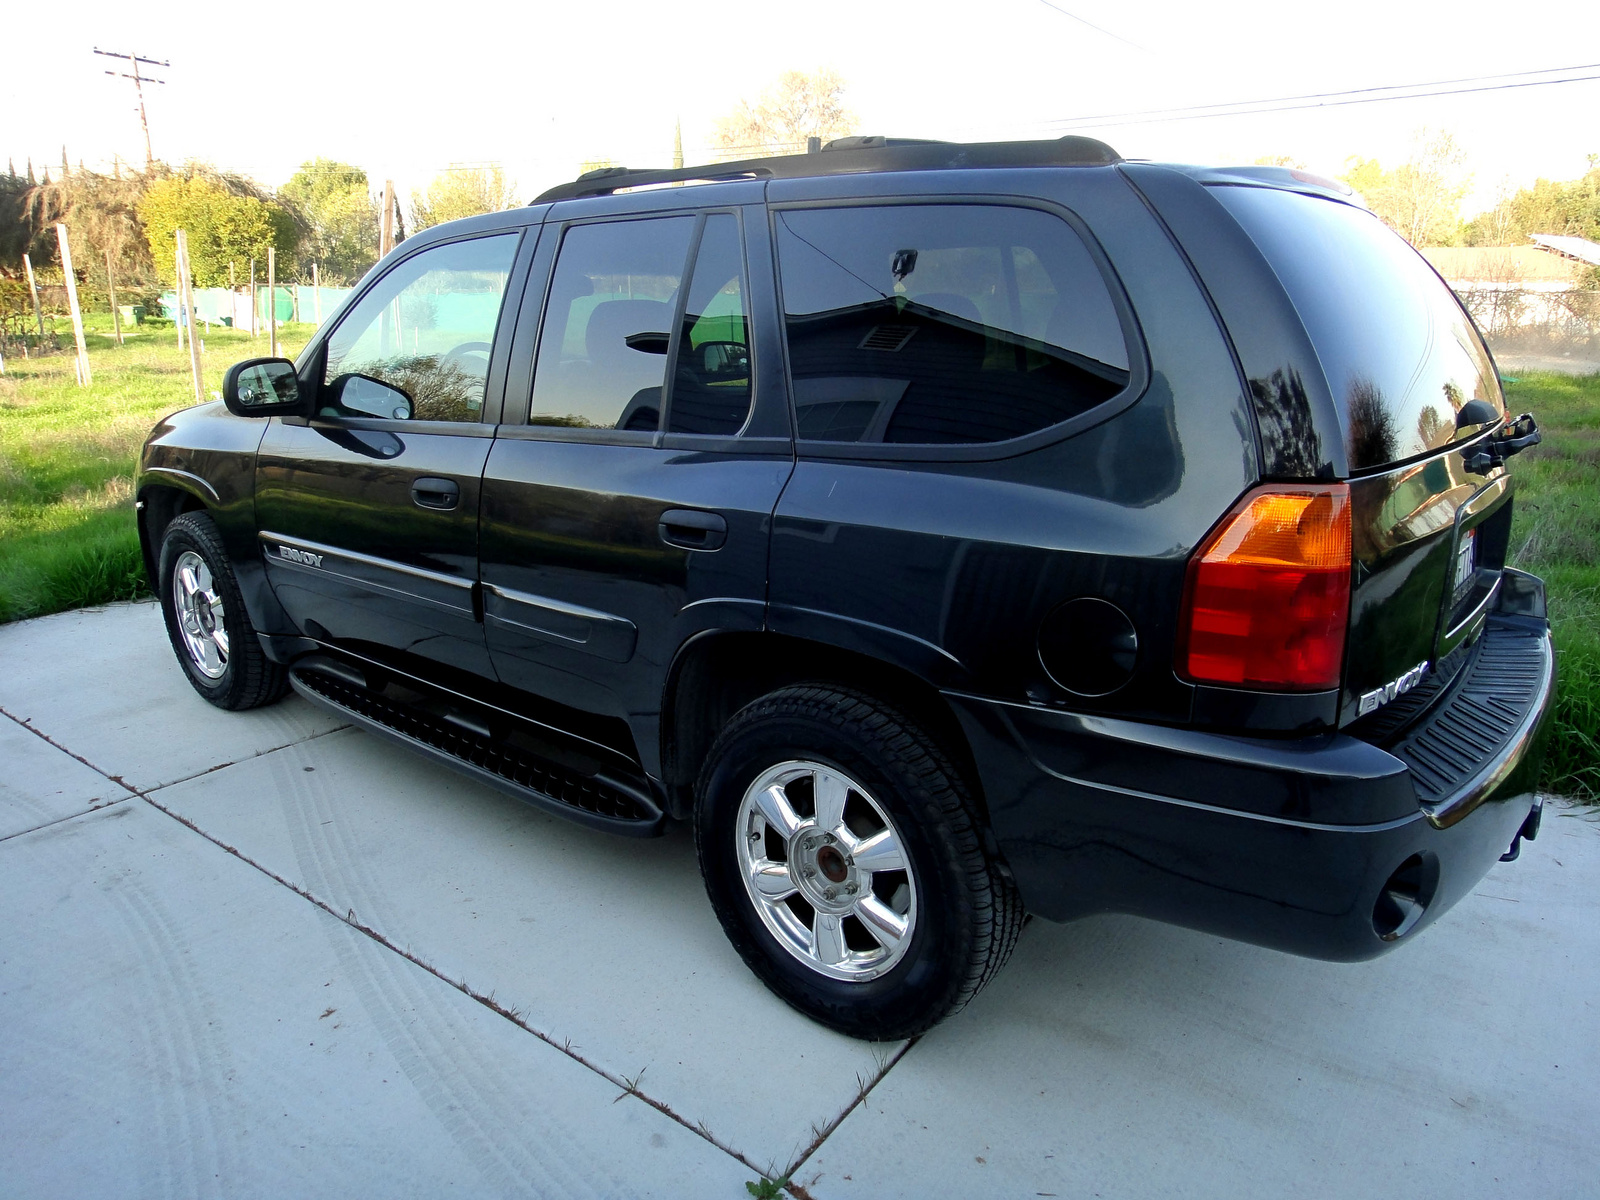 Picture of 2003 GMC Envoy 4 Dr SLE SUV